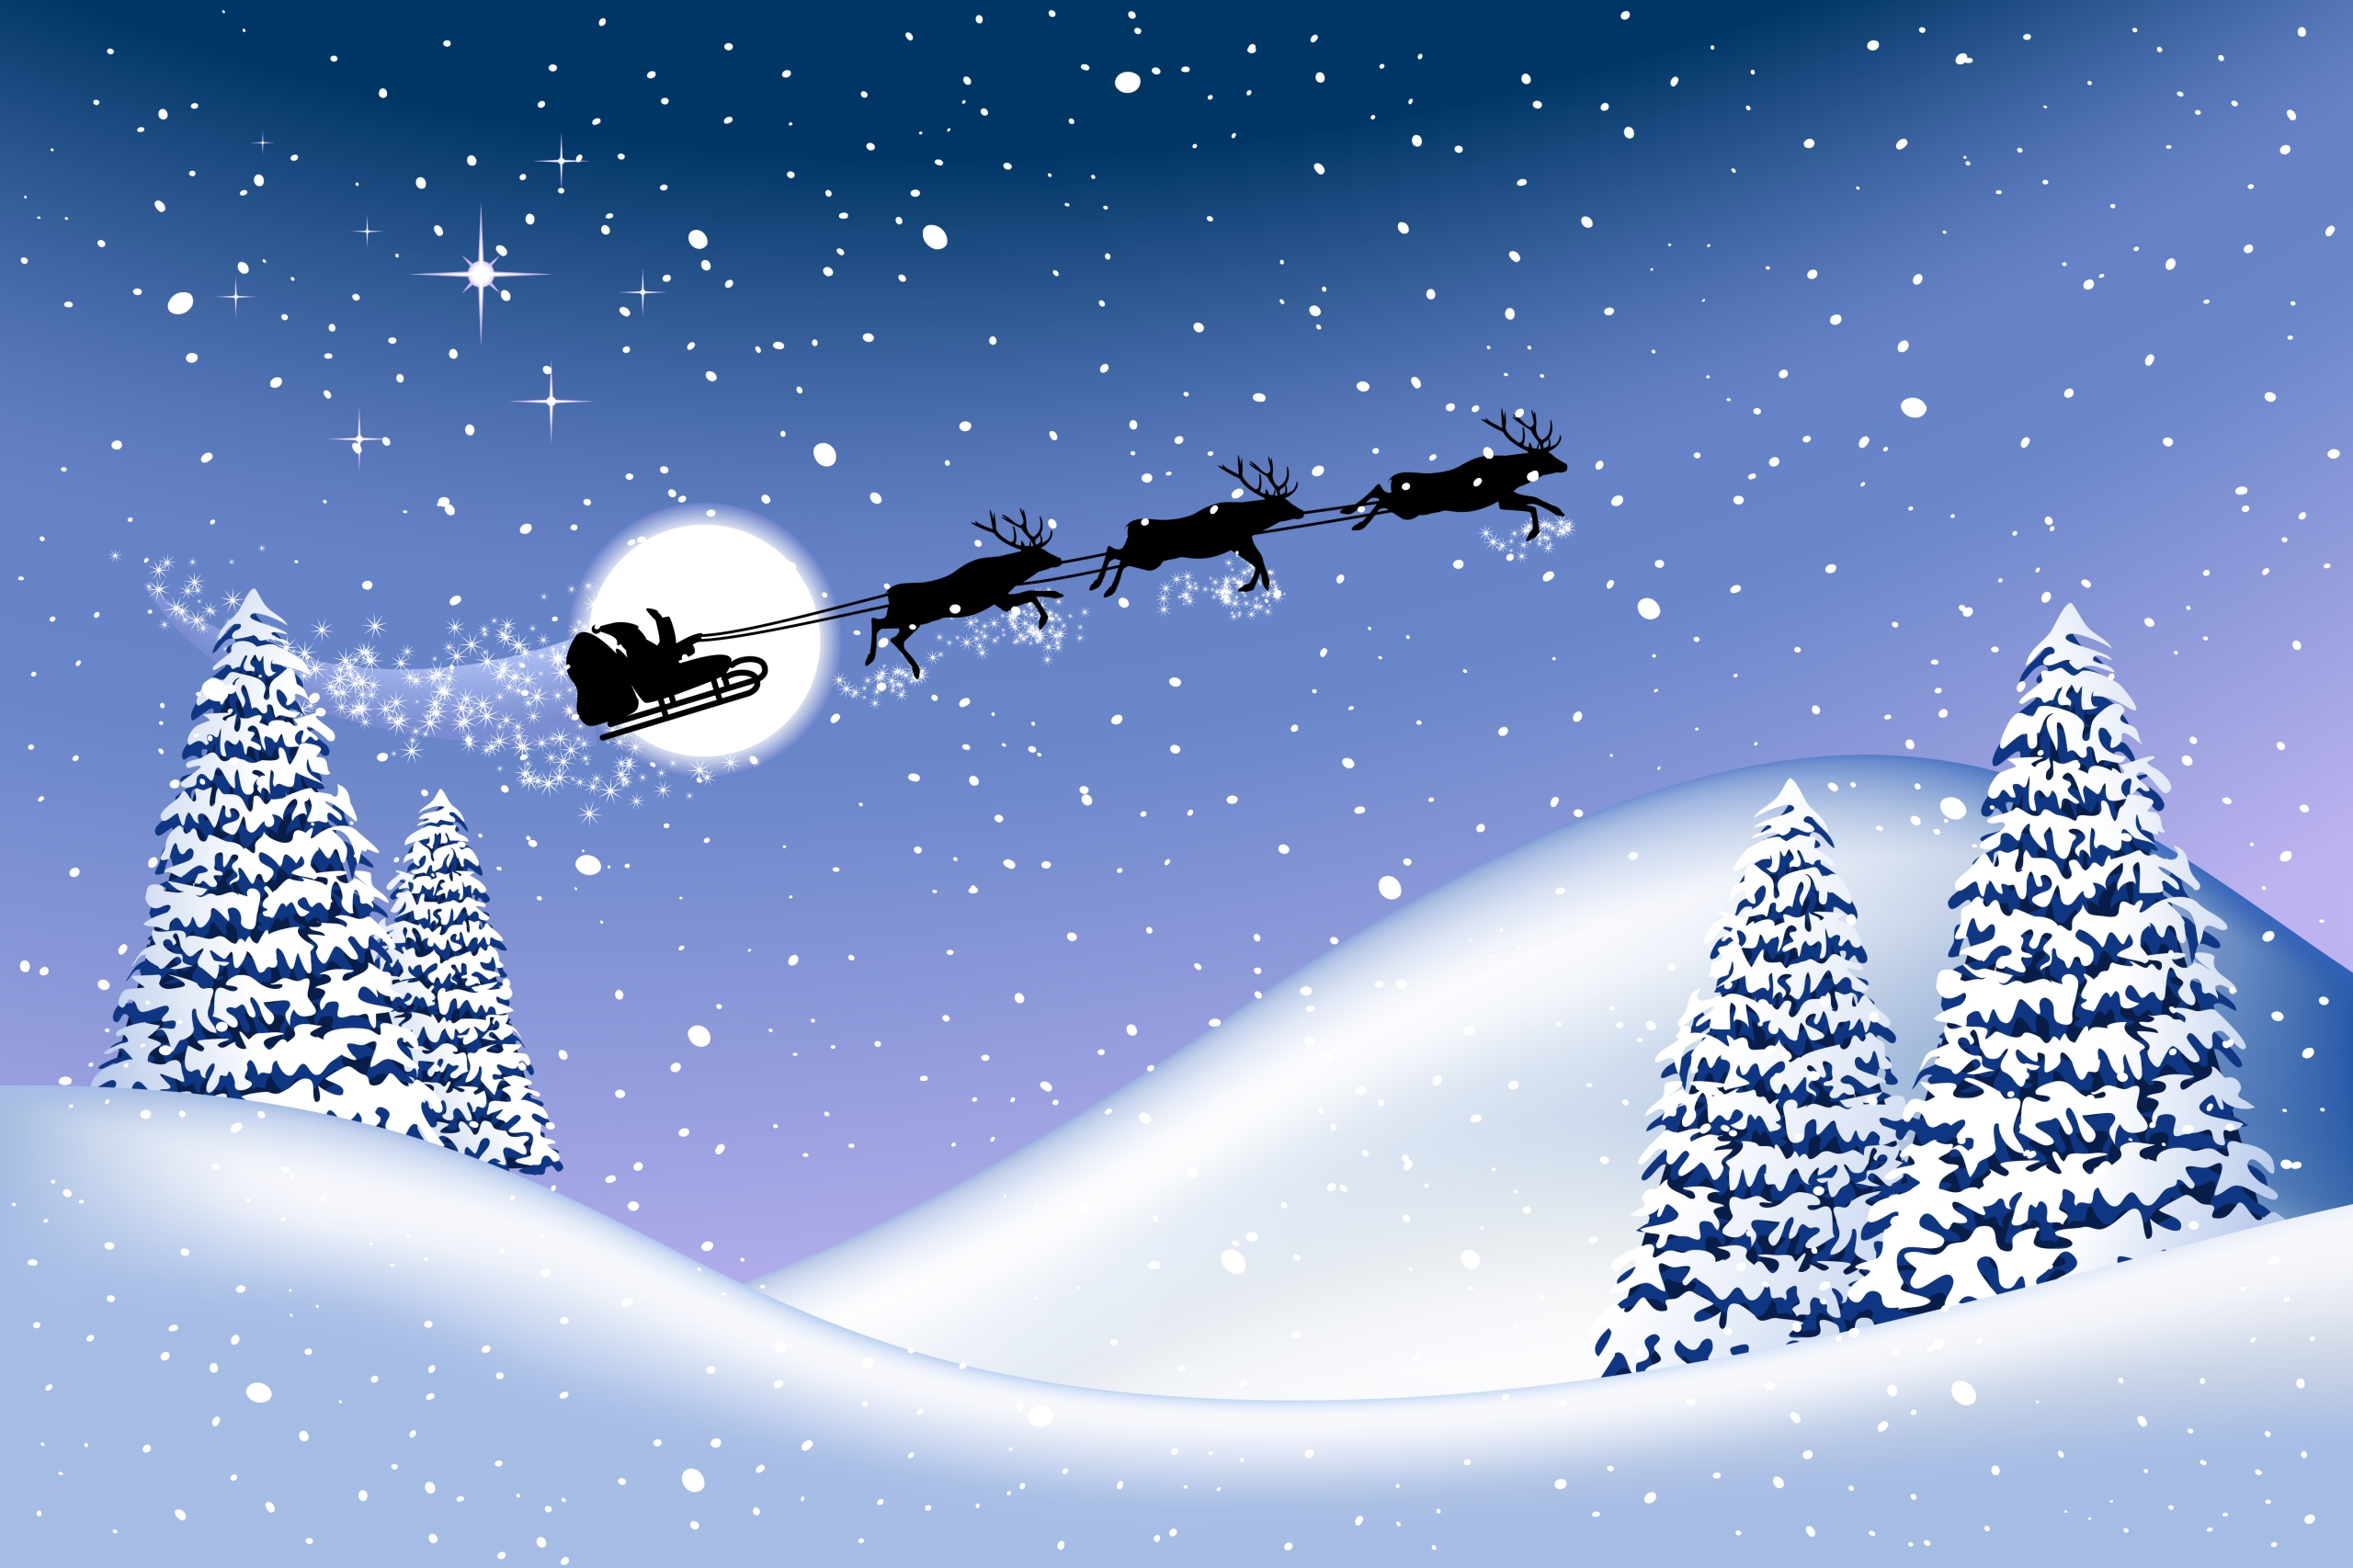 Christmas background, all elements are editable on different layers